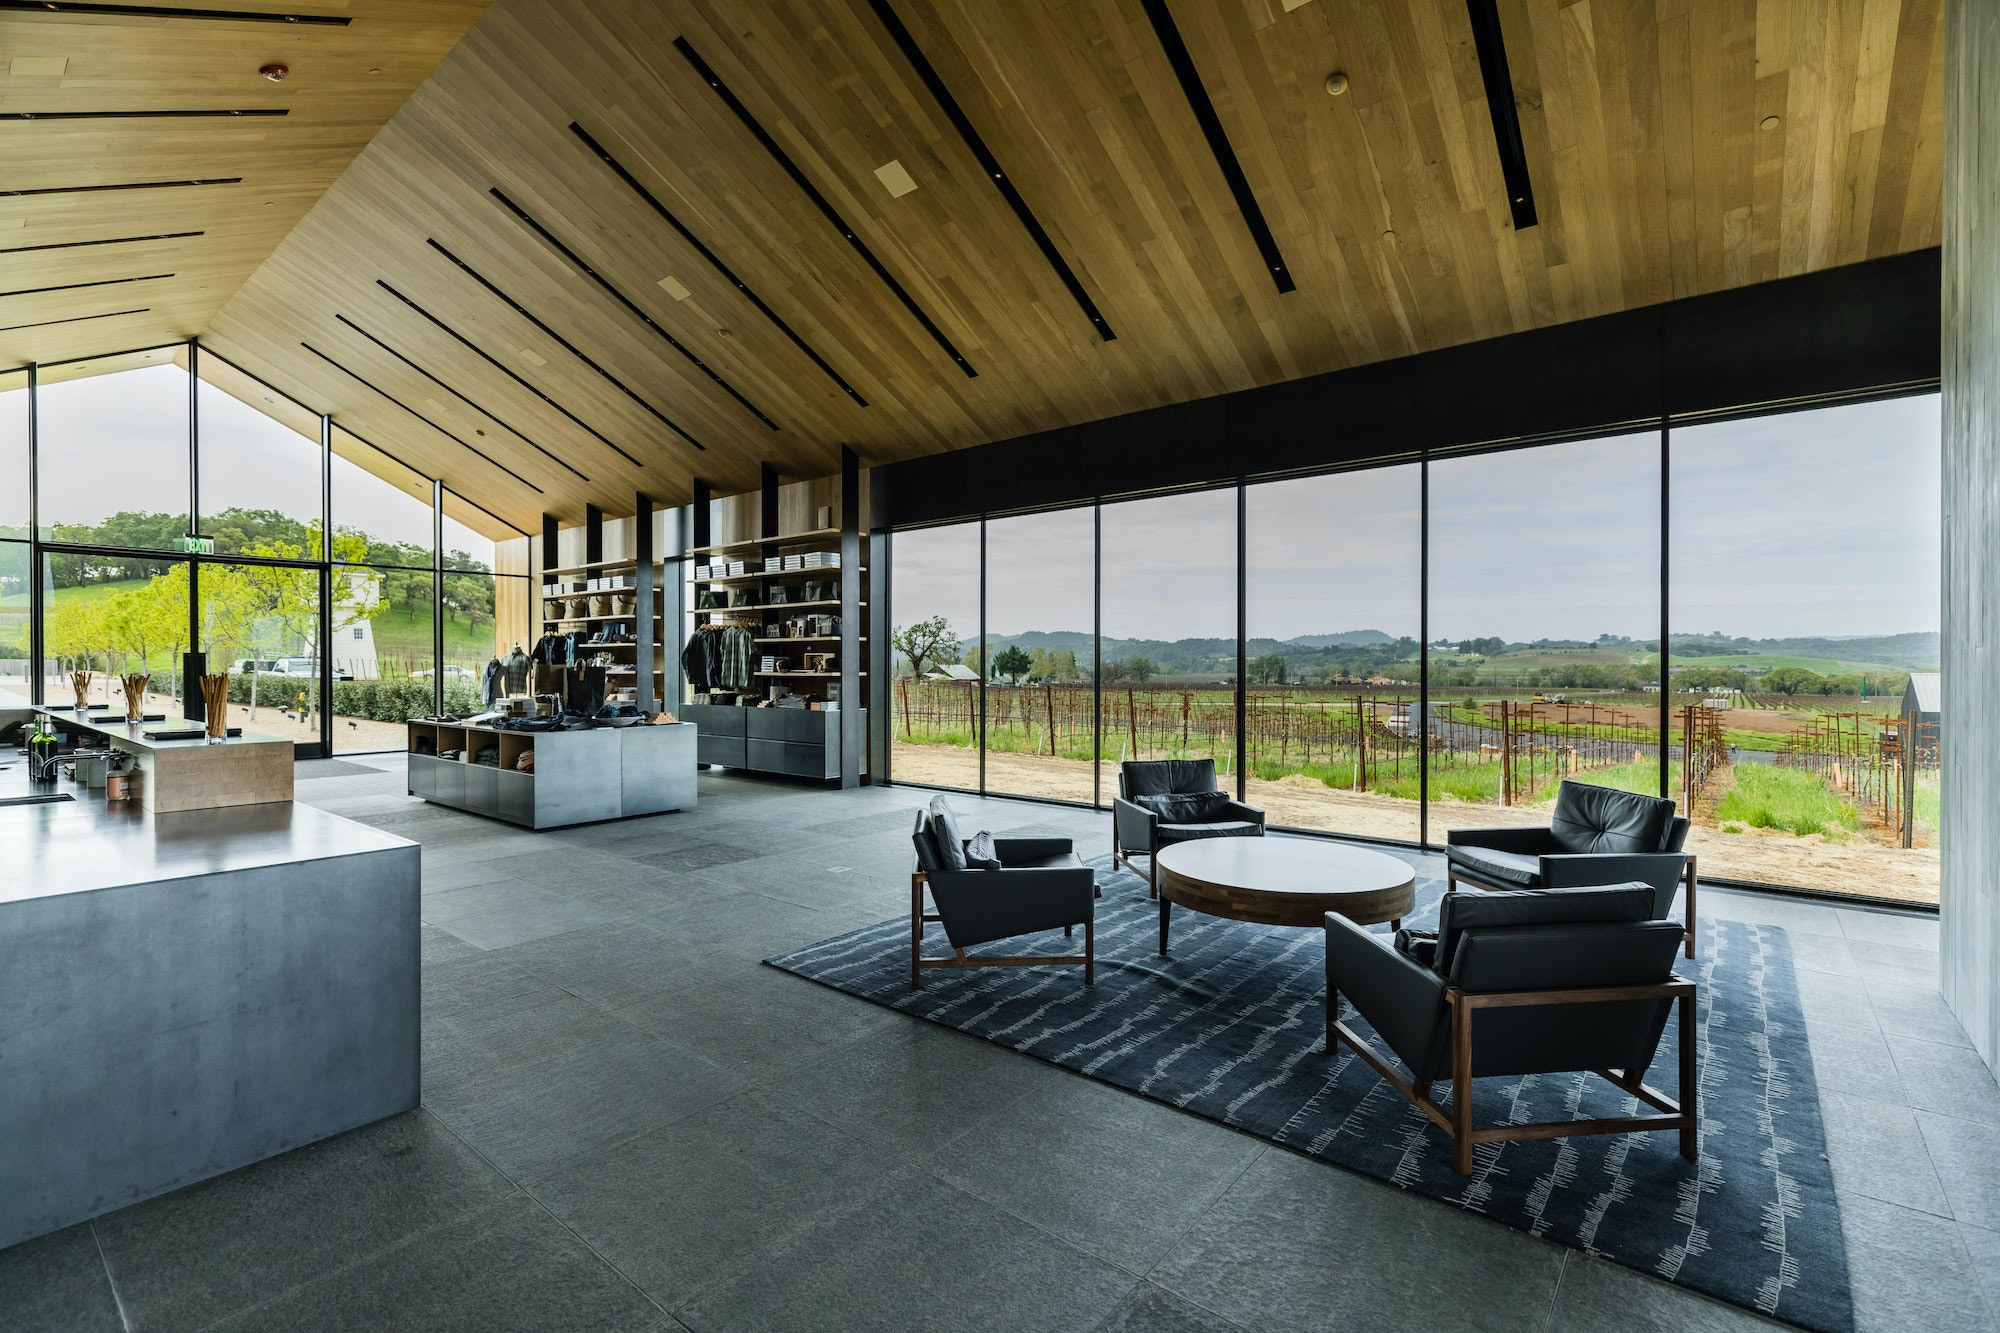 Architect Daniel Piechota designed the tasting room to frame the winery's 75 acres of cabernet vines.